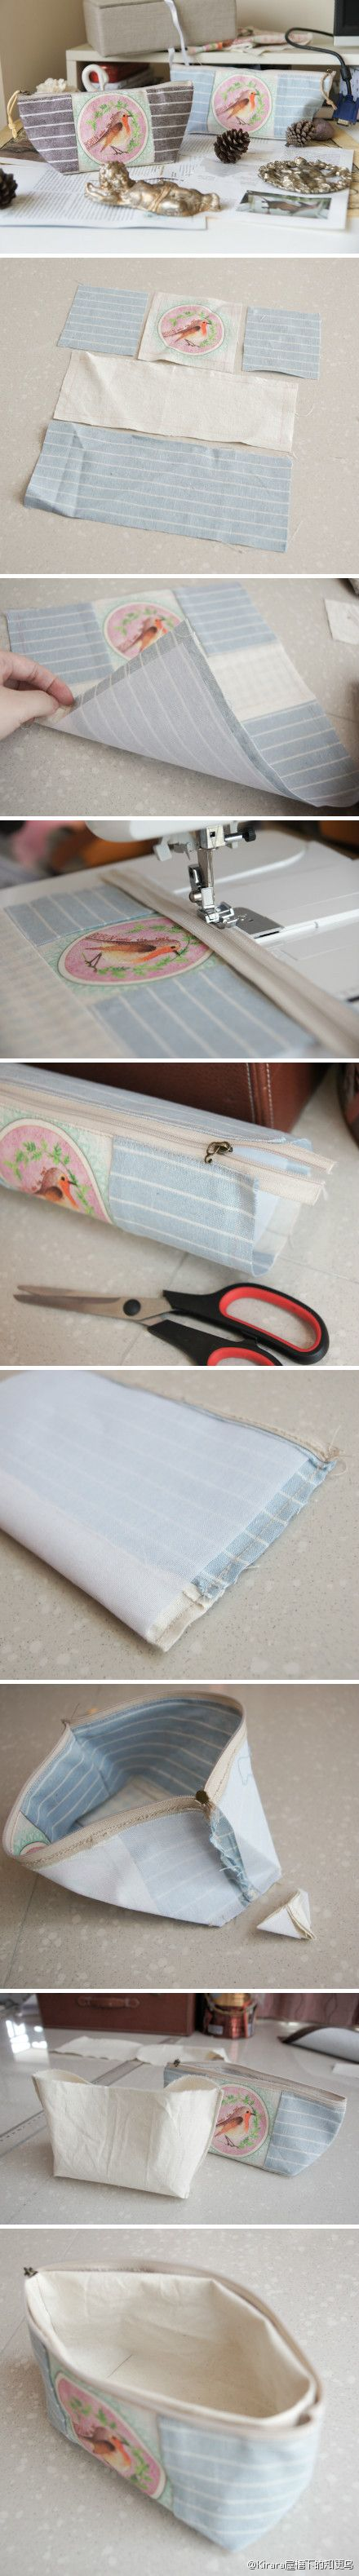 @ Kirara roof Robin tutorials, cotton dyed canvas, handmade robin pattern pencil / makeup bag.  Detailed steps and pieces of cloth size look here http://t.cn/zWqsUro